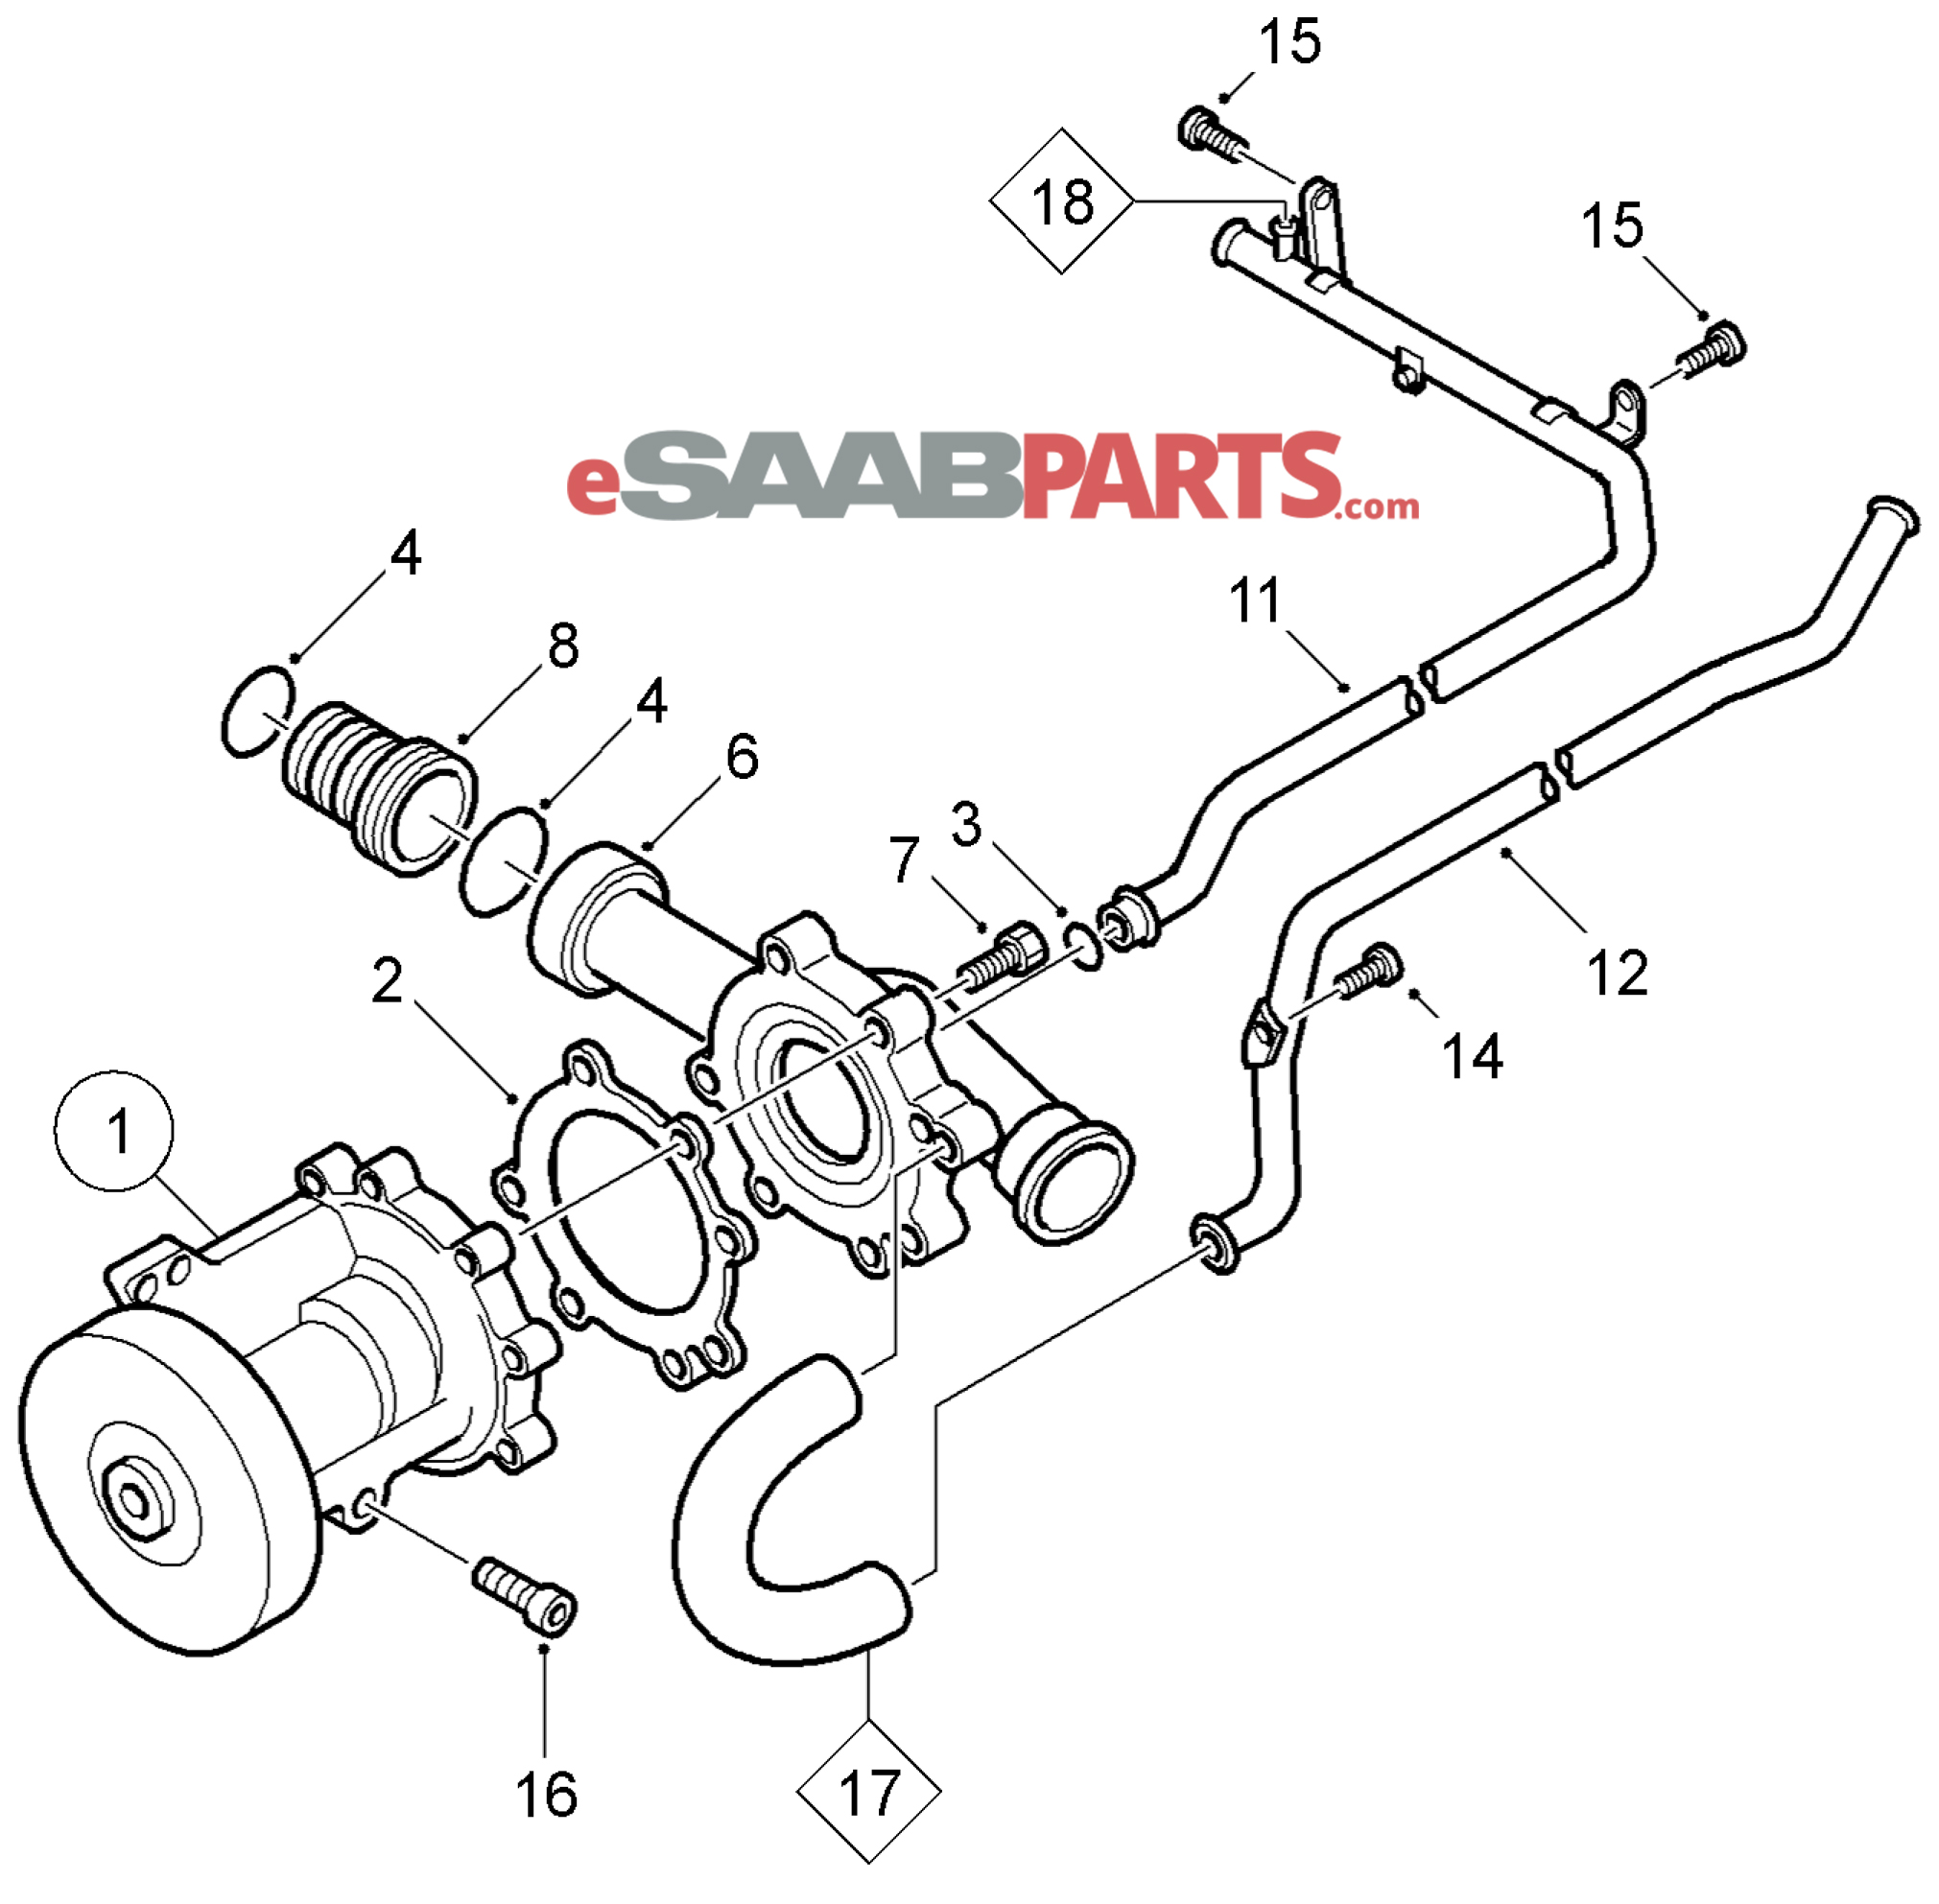 Vacuum Hose Diagram For 2002 Saab 9 5. Saab. Wiring